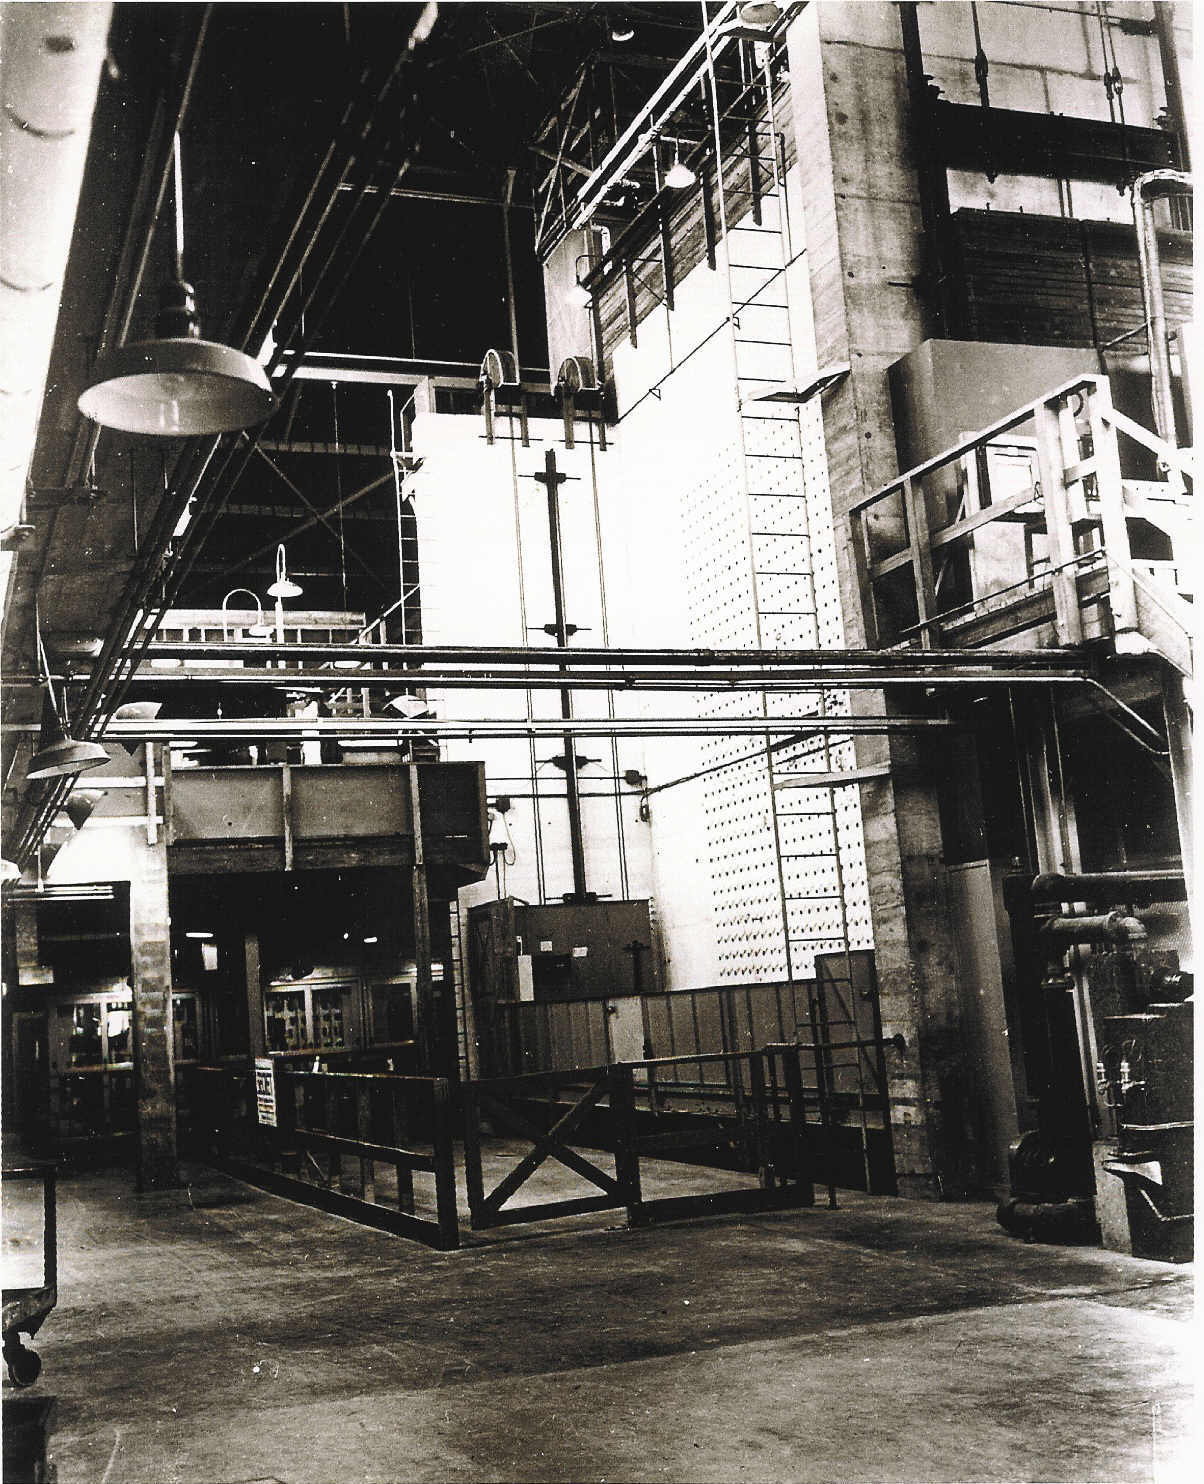 The X-10 Graphite Reactor